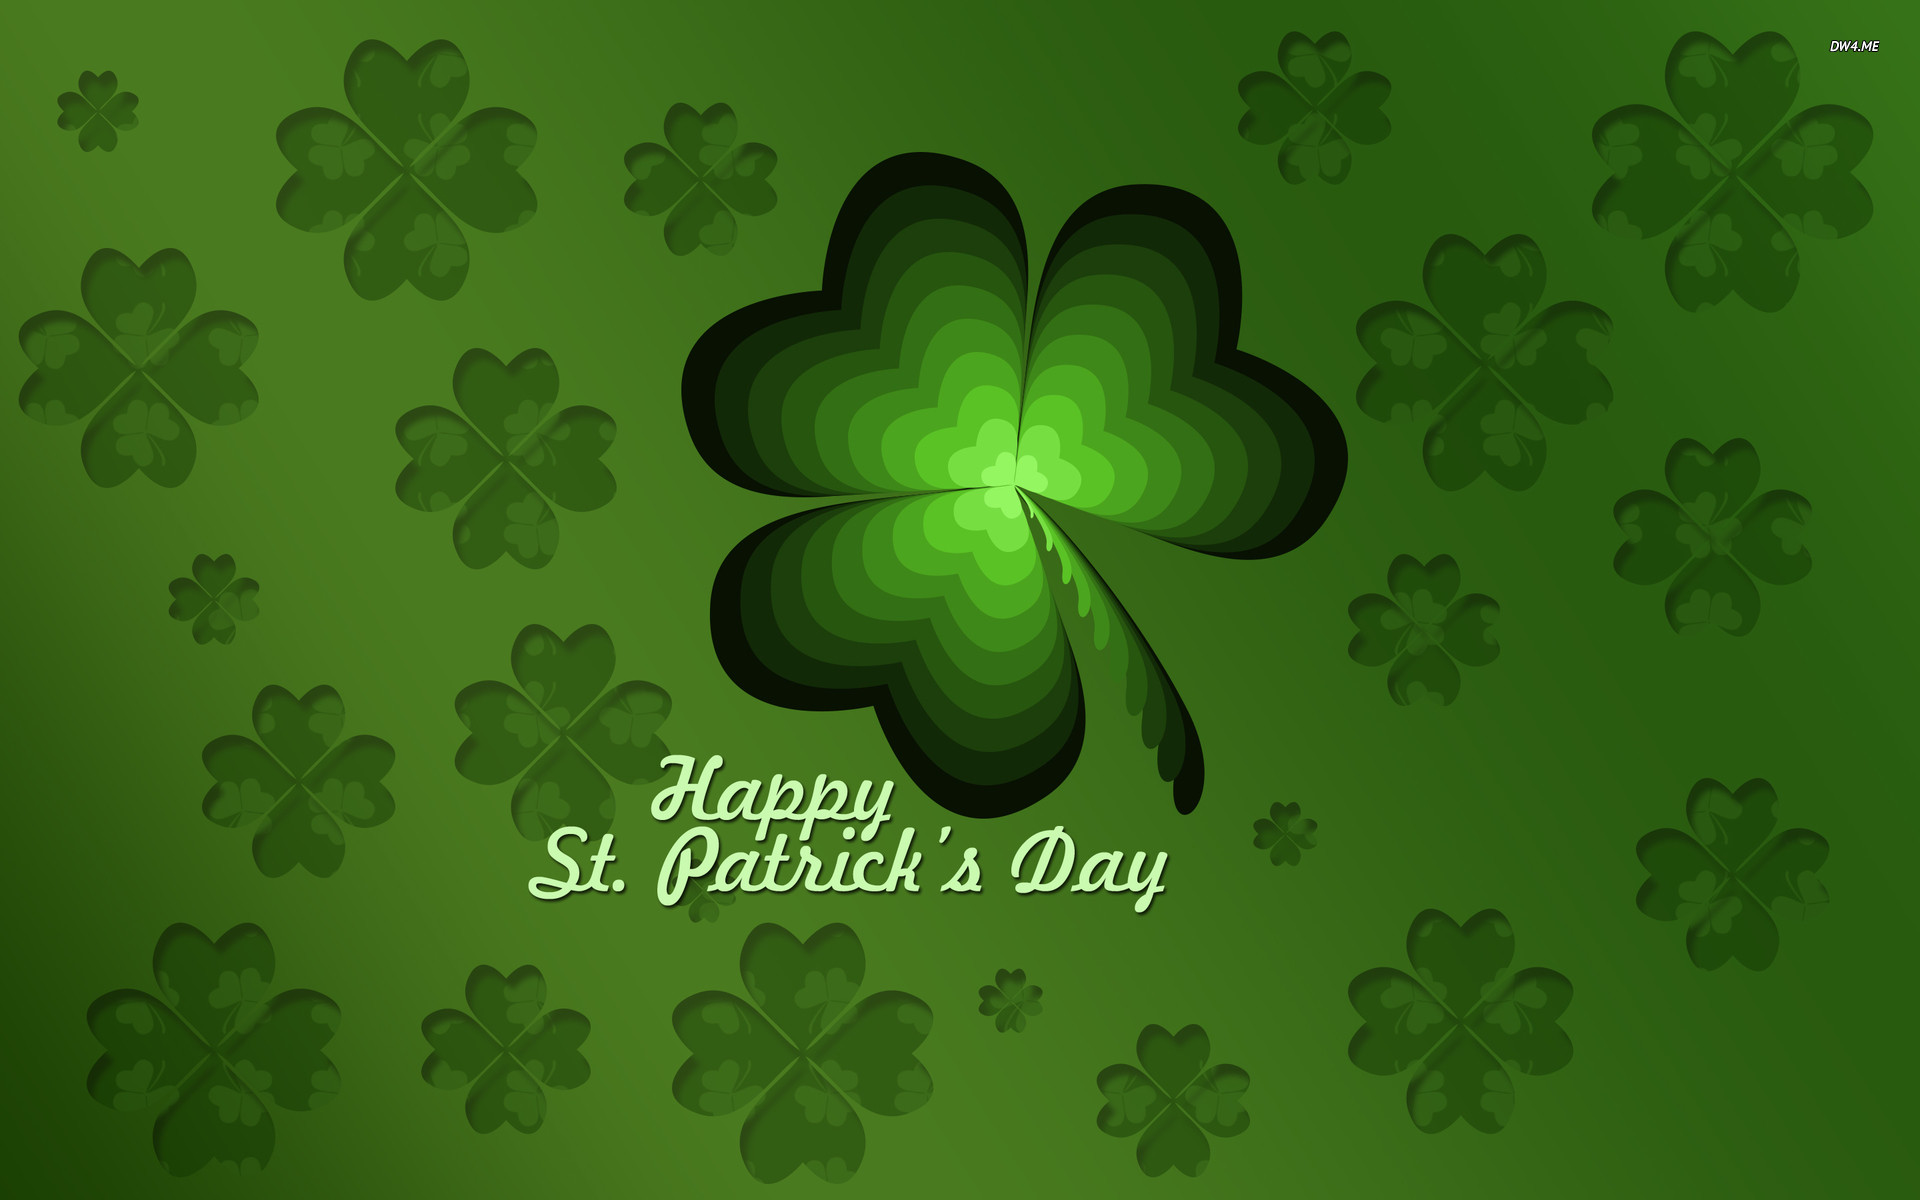 1920x1200 St. Patrick's Day wallpaper - Holiday wallpapers - #2622